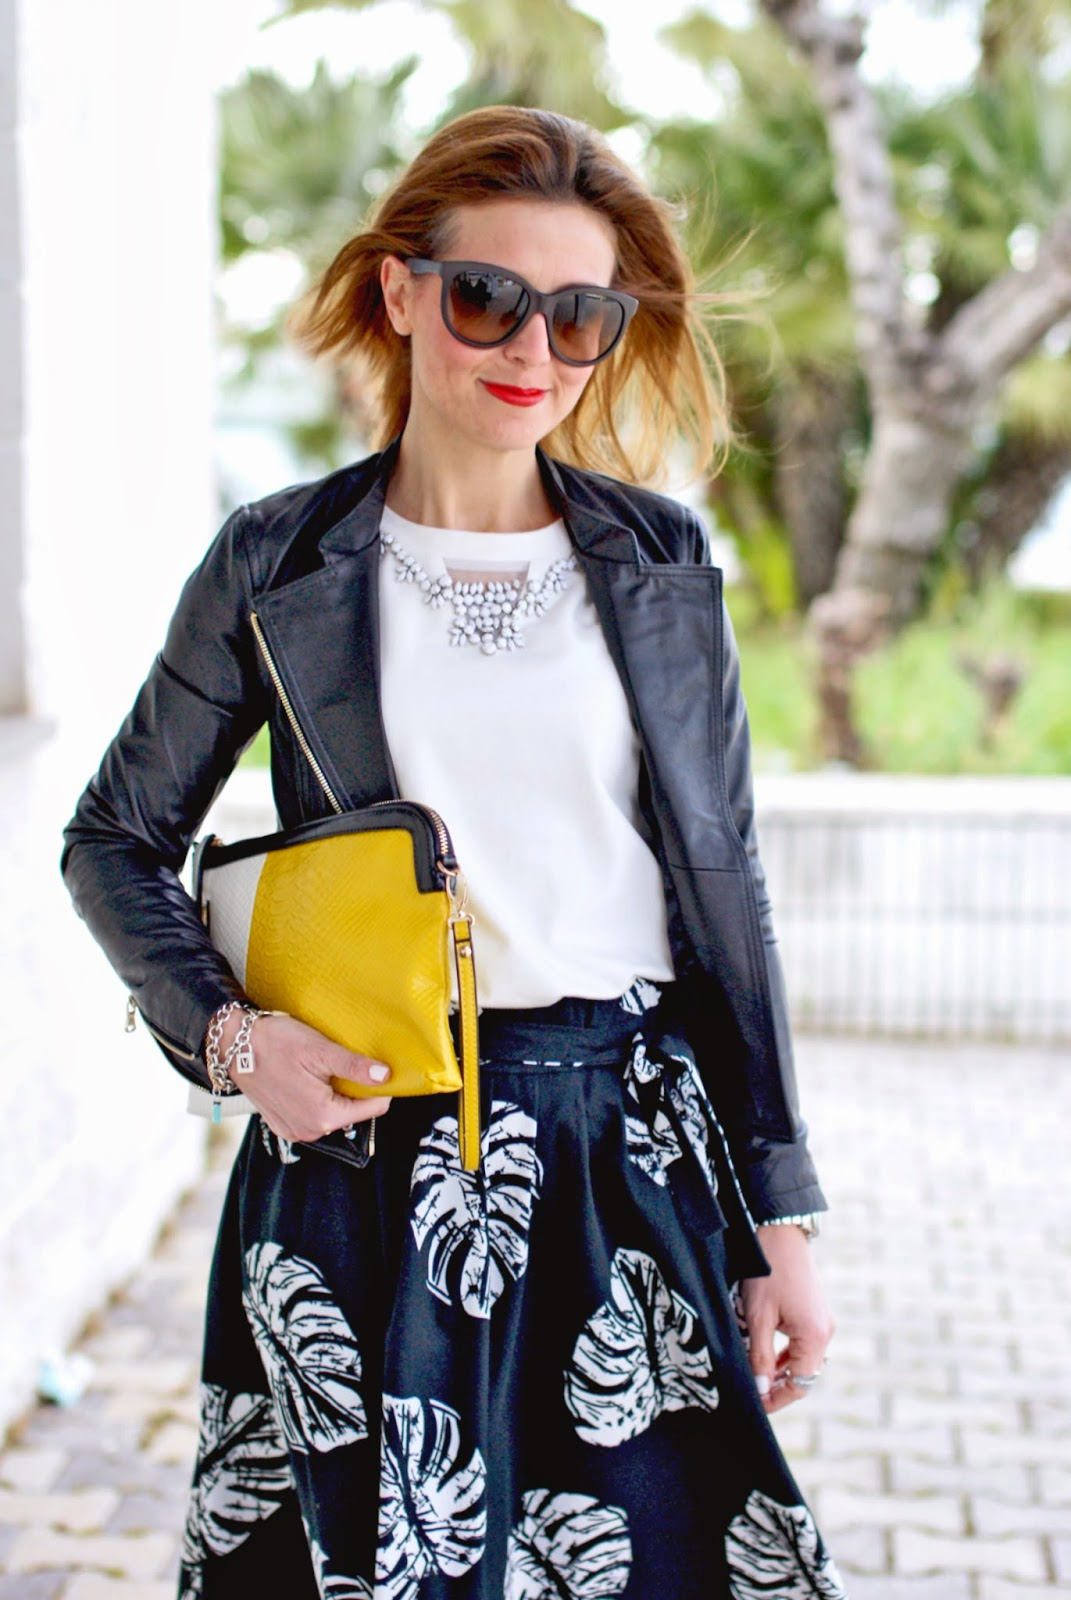 Giorgia & Johns felpa pietre e tulle, leather peplum jacket, Zara midi skirt, Fashion and Cookies, fashion blogger